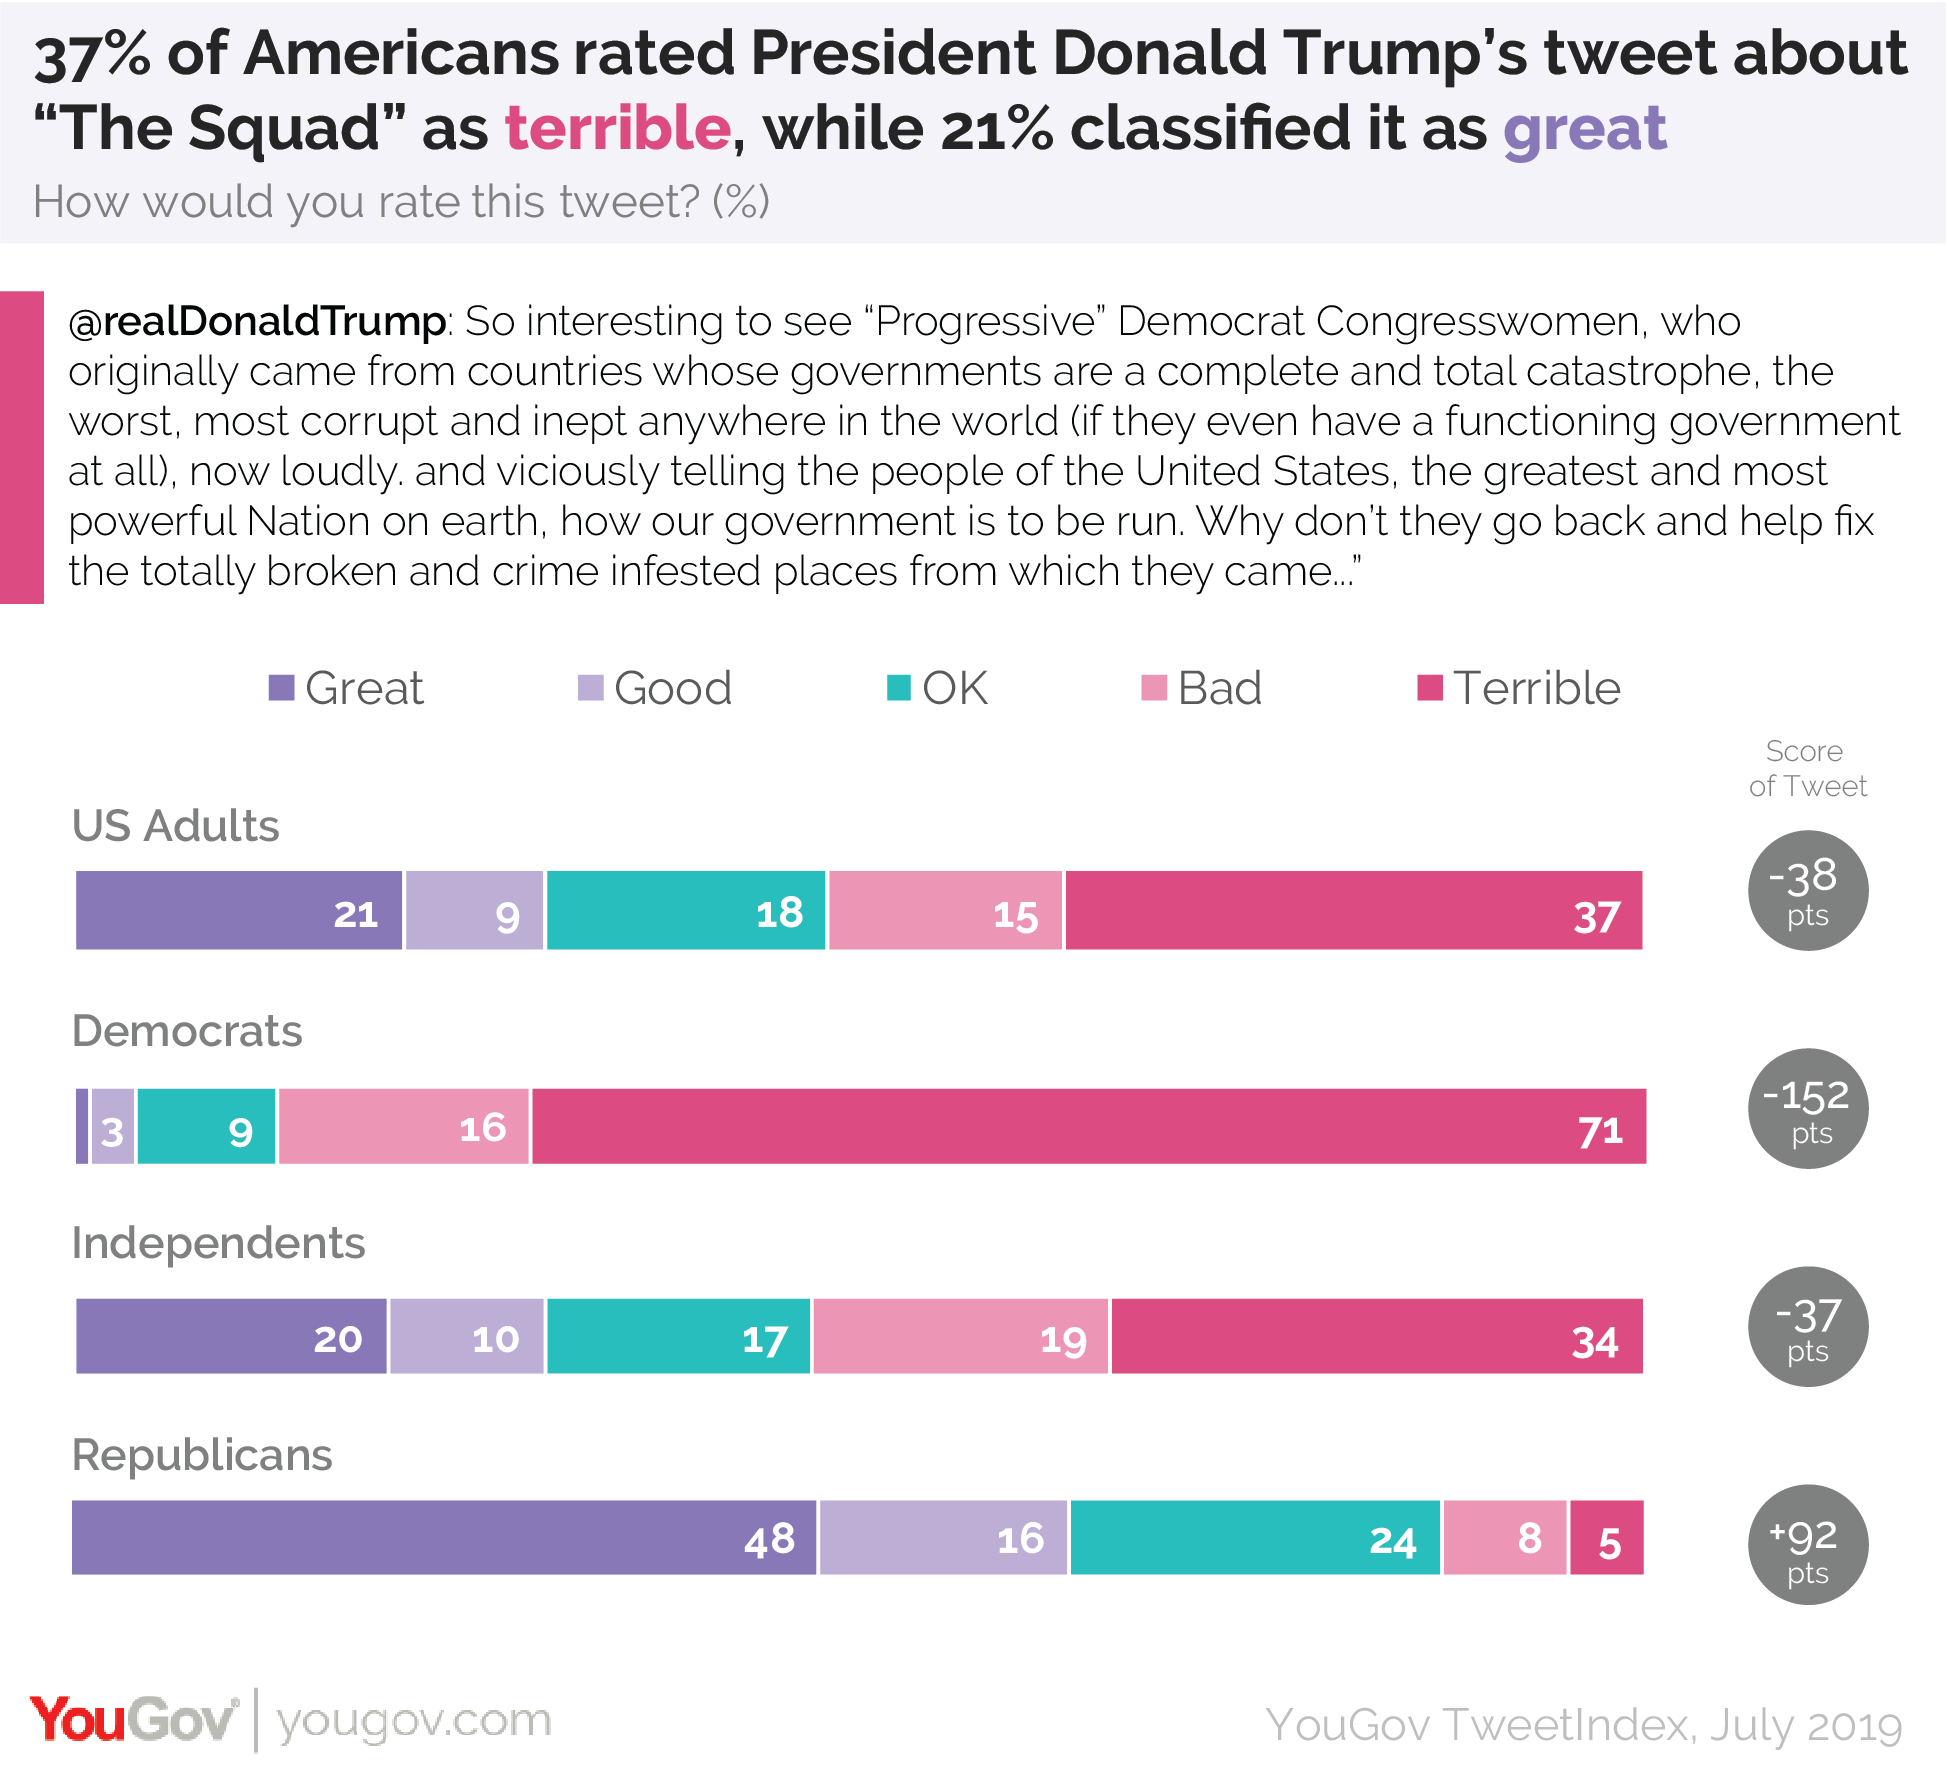 37% of Americans rated President Donald Trump's tweet about The Squad as terrible, while 21% classified it as great